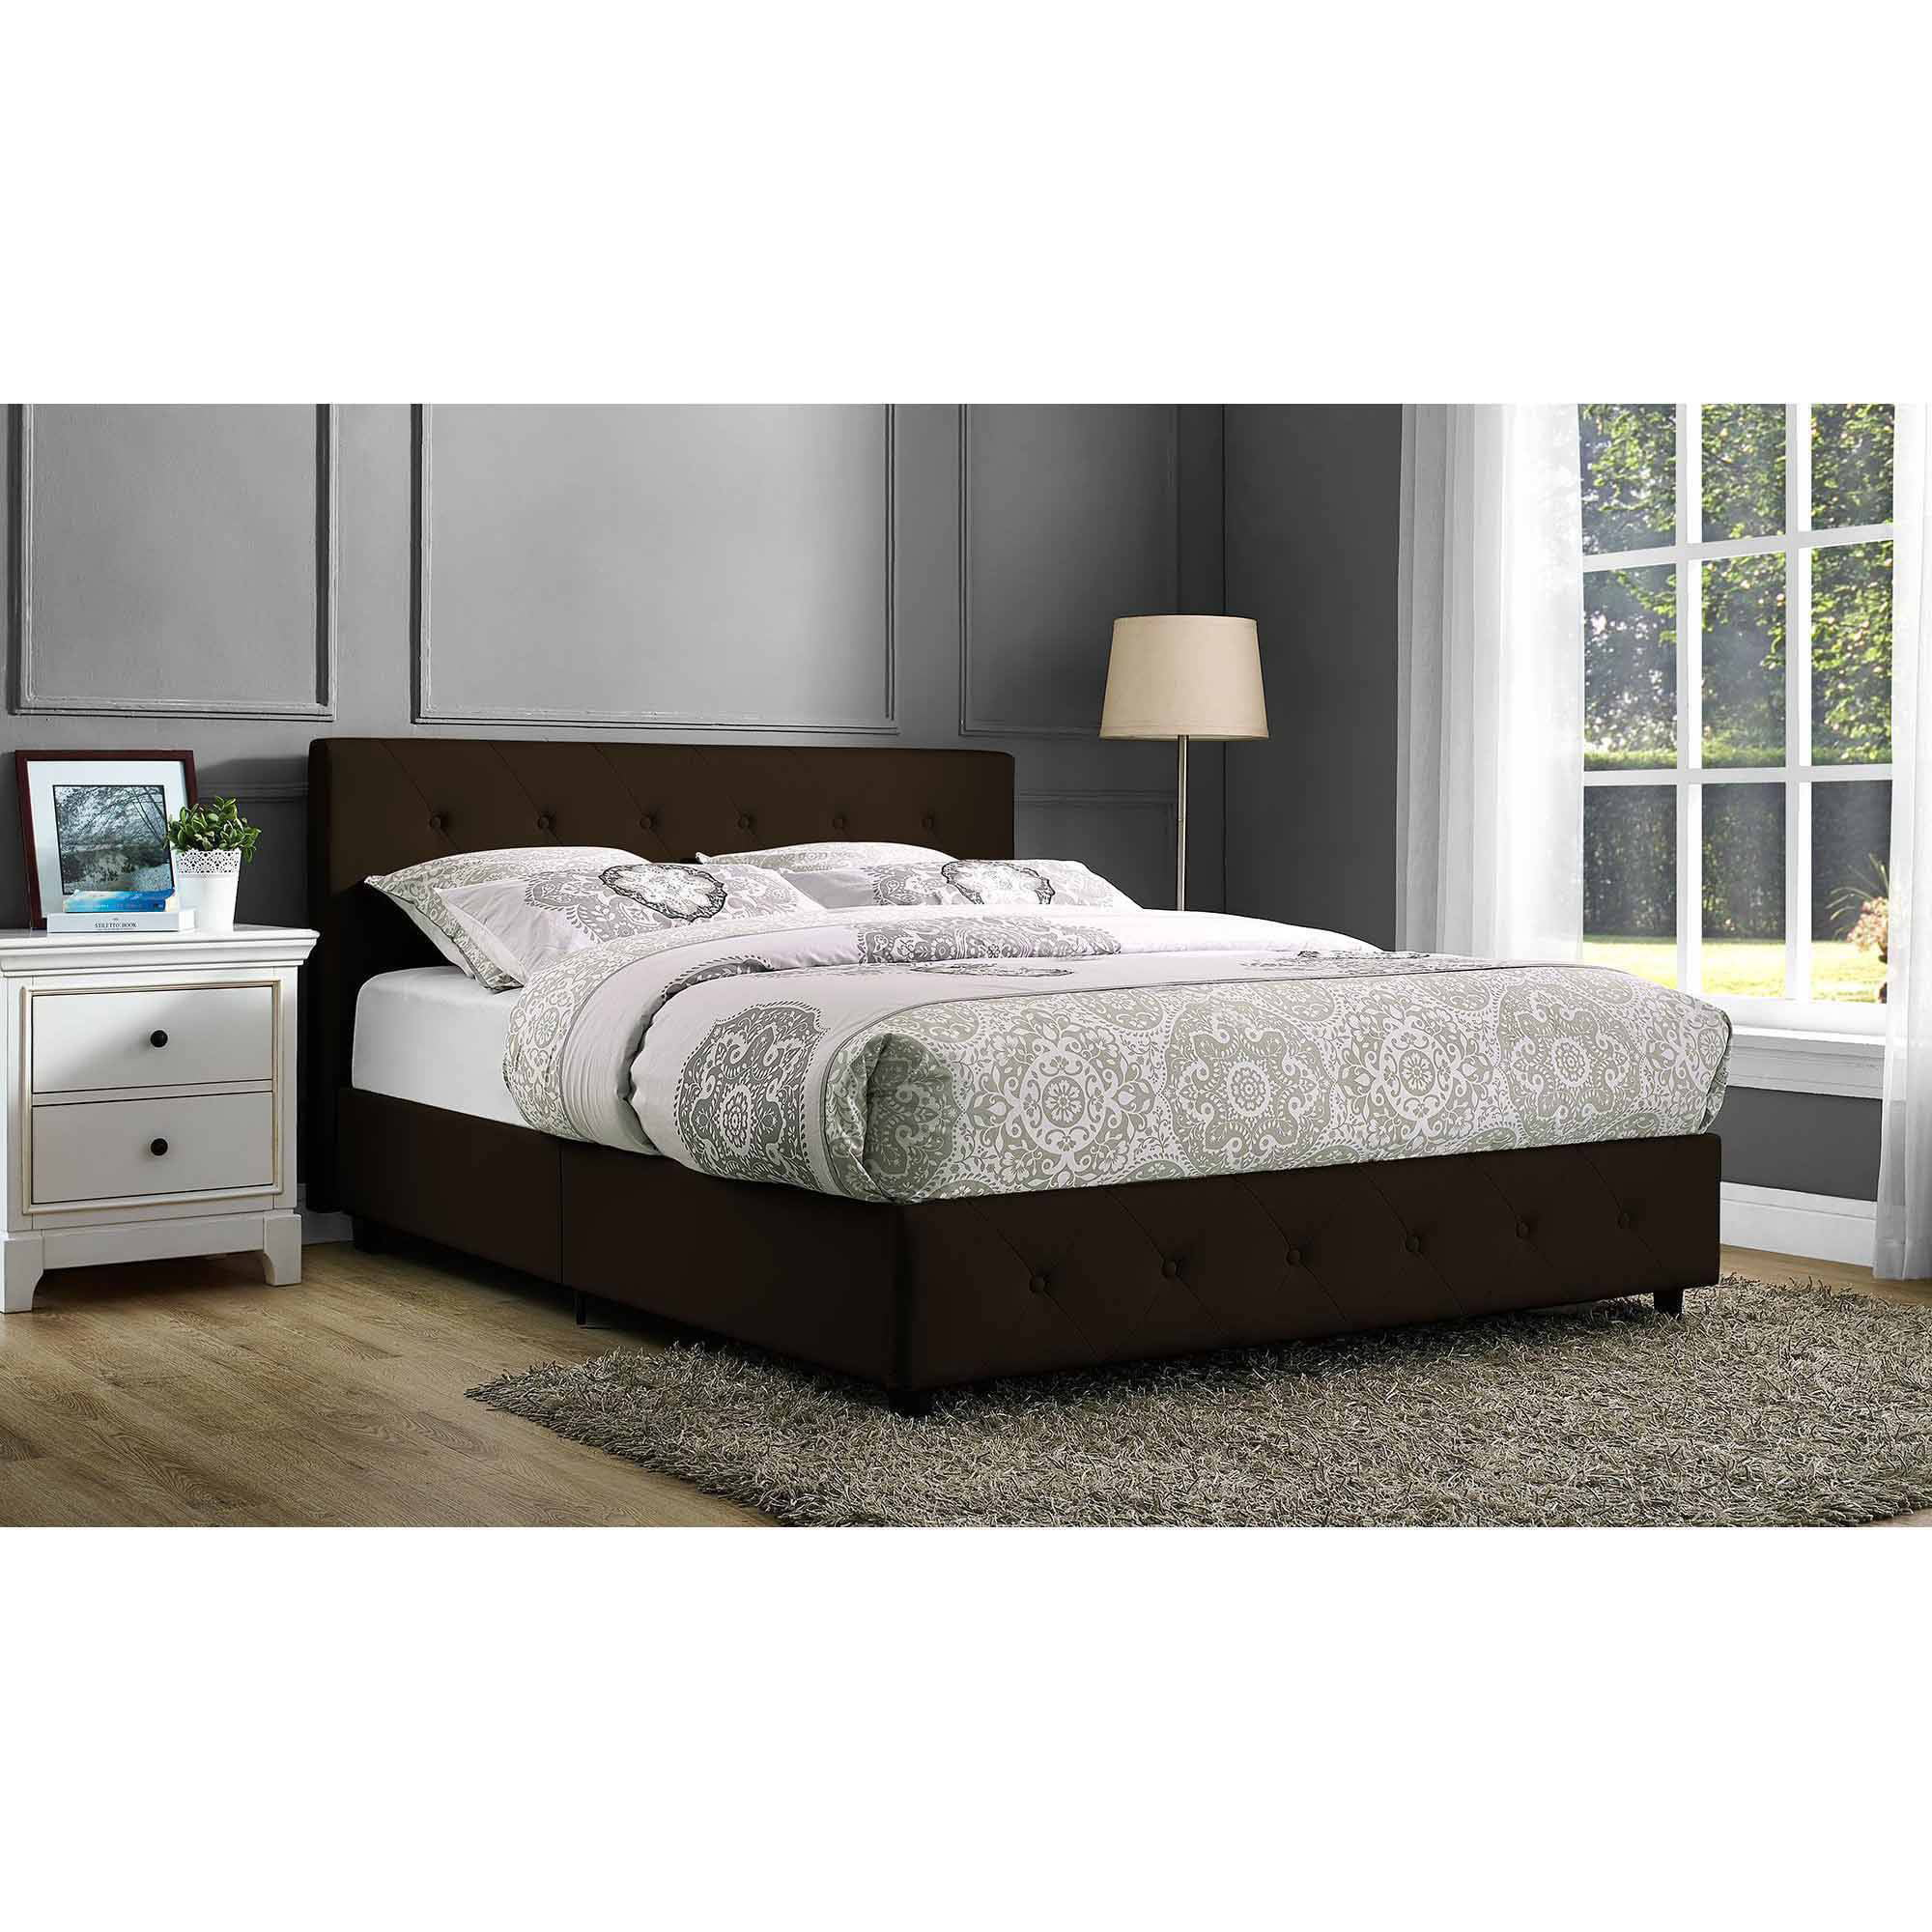 DHP Dakota Faux Leather Upholstered, Multiple Colors, Multiple Sizes by Dorel Home Products